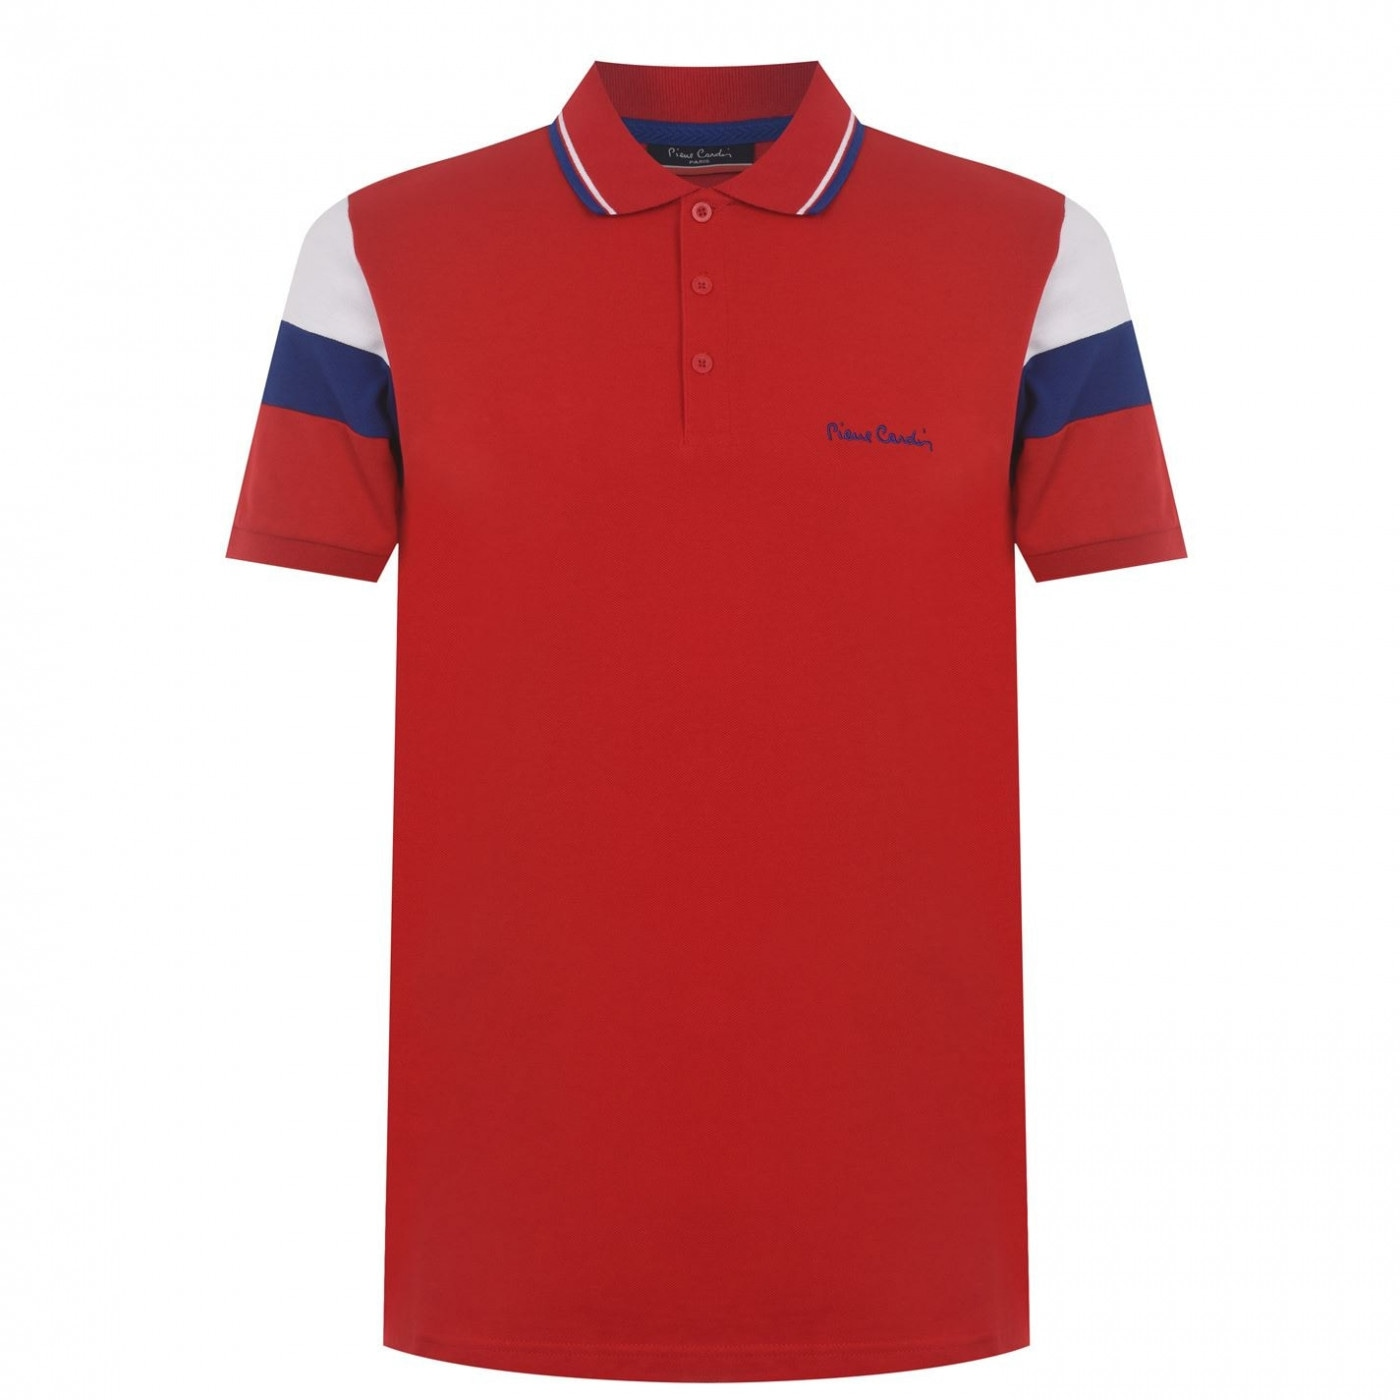 Pierre Cardin Cut and Sew Sleeve Polo Mens